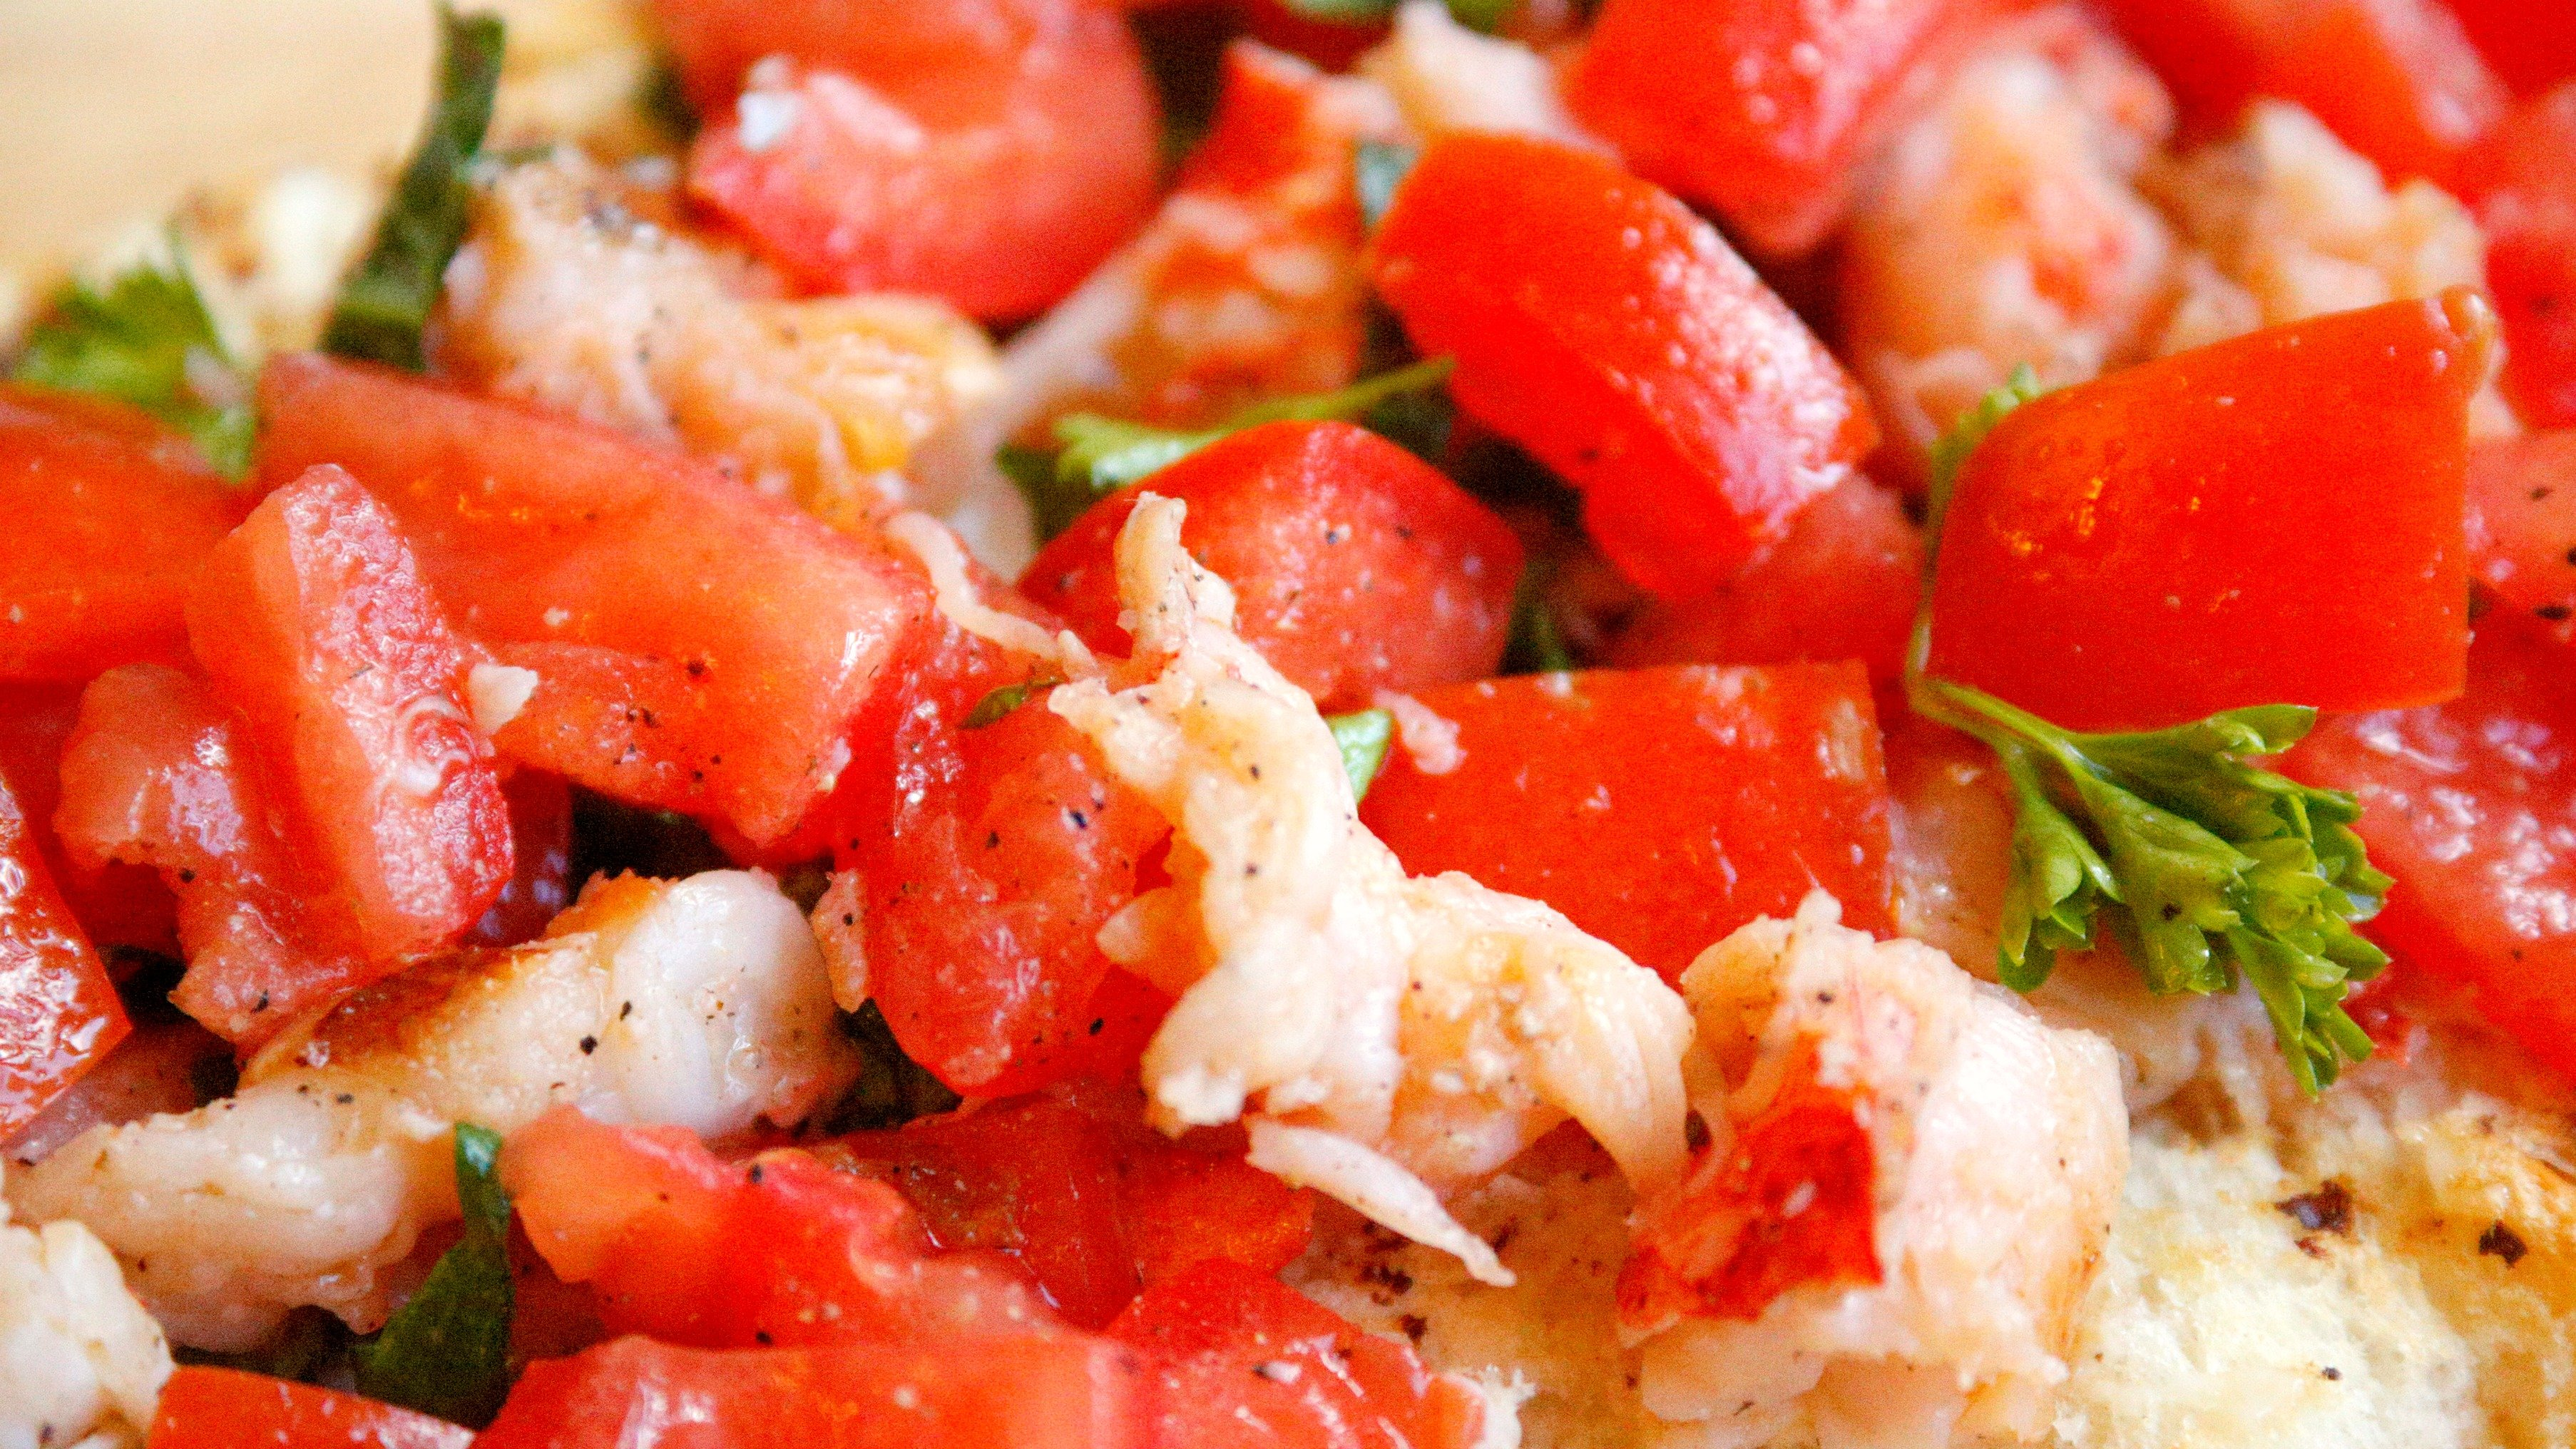 This yummy lobster bruschetta is a quick and easy appetizer to whip up for your next event.